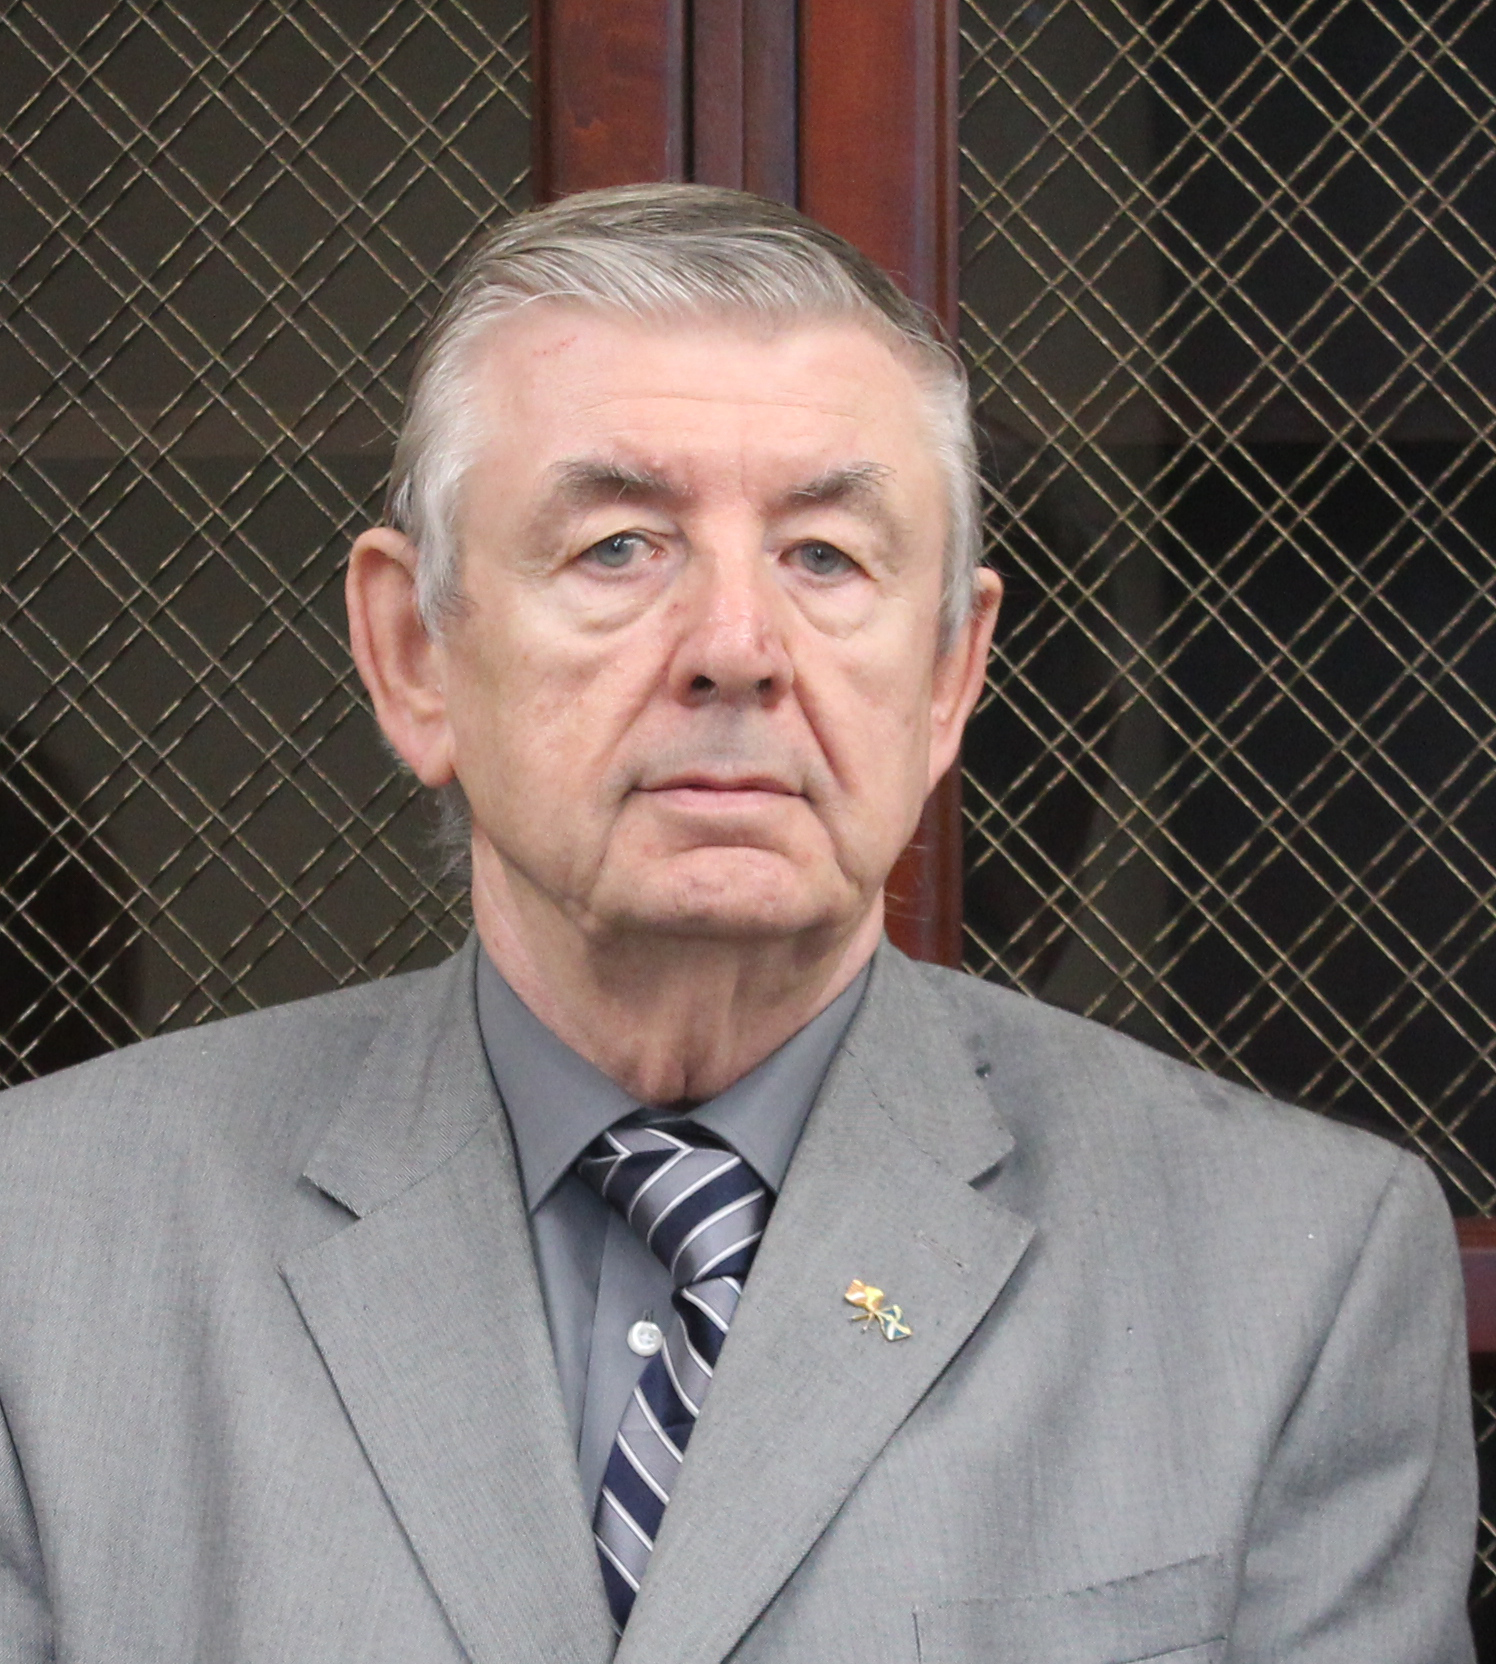 white male in suit